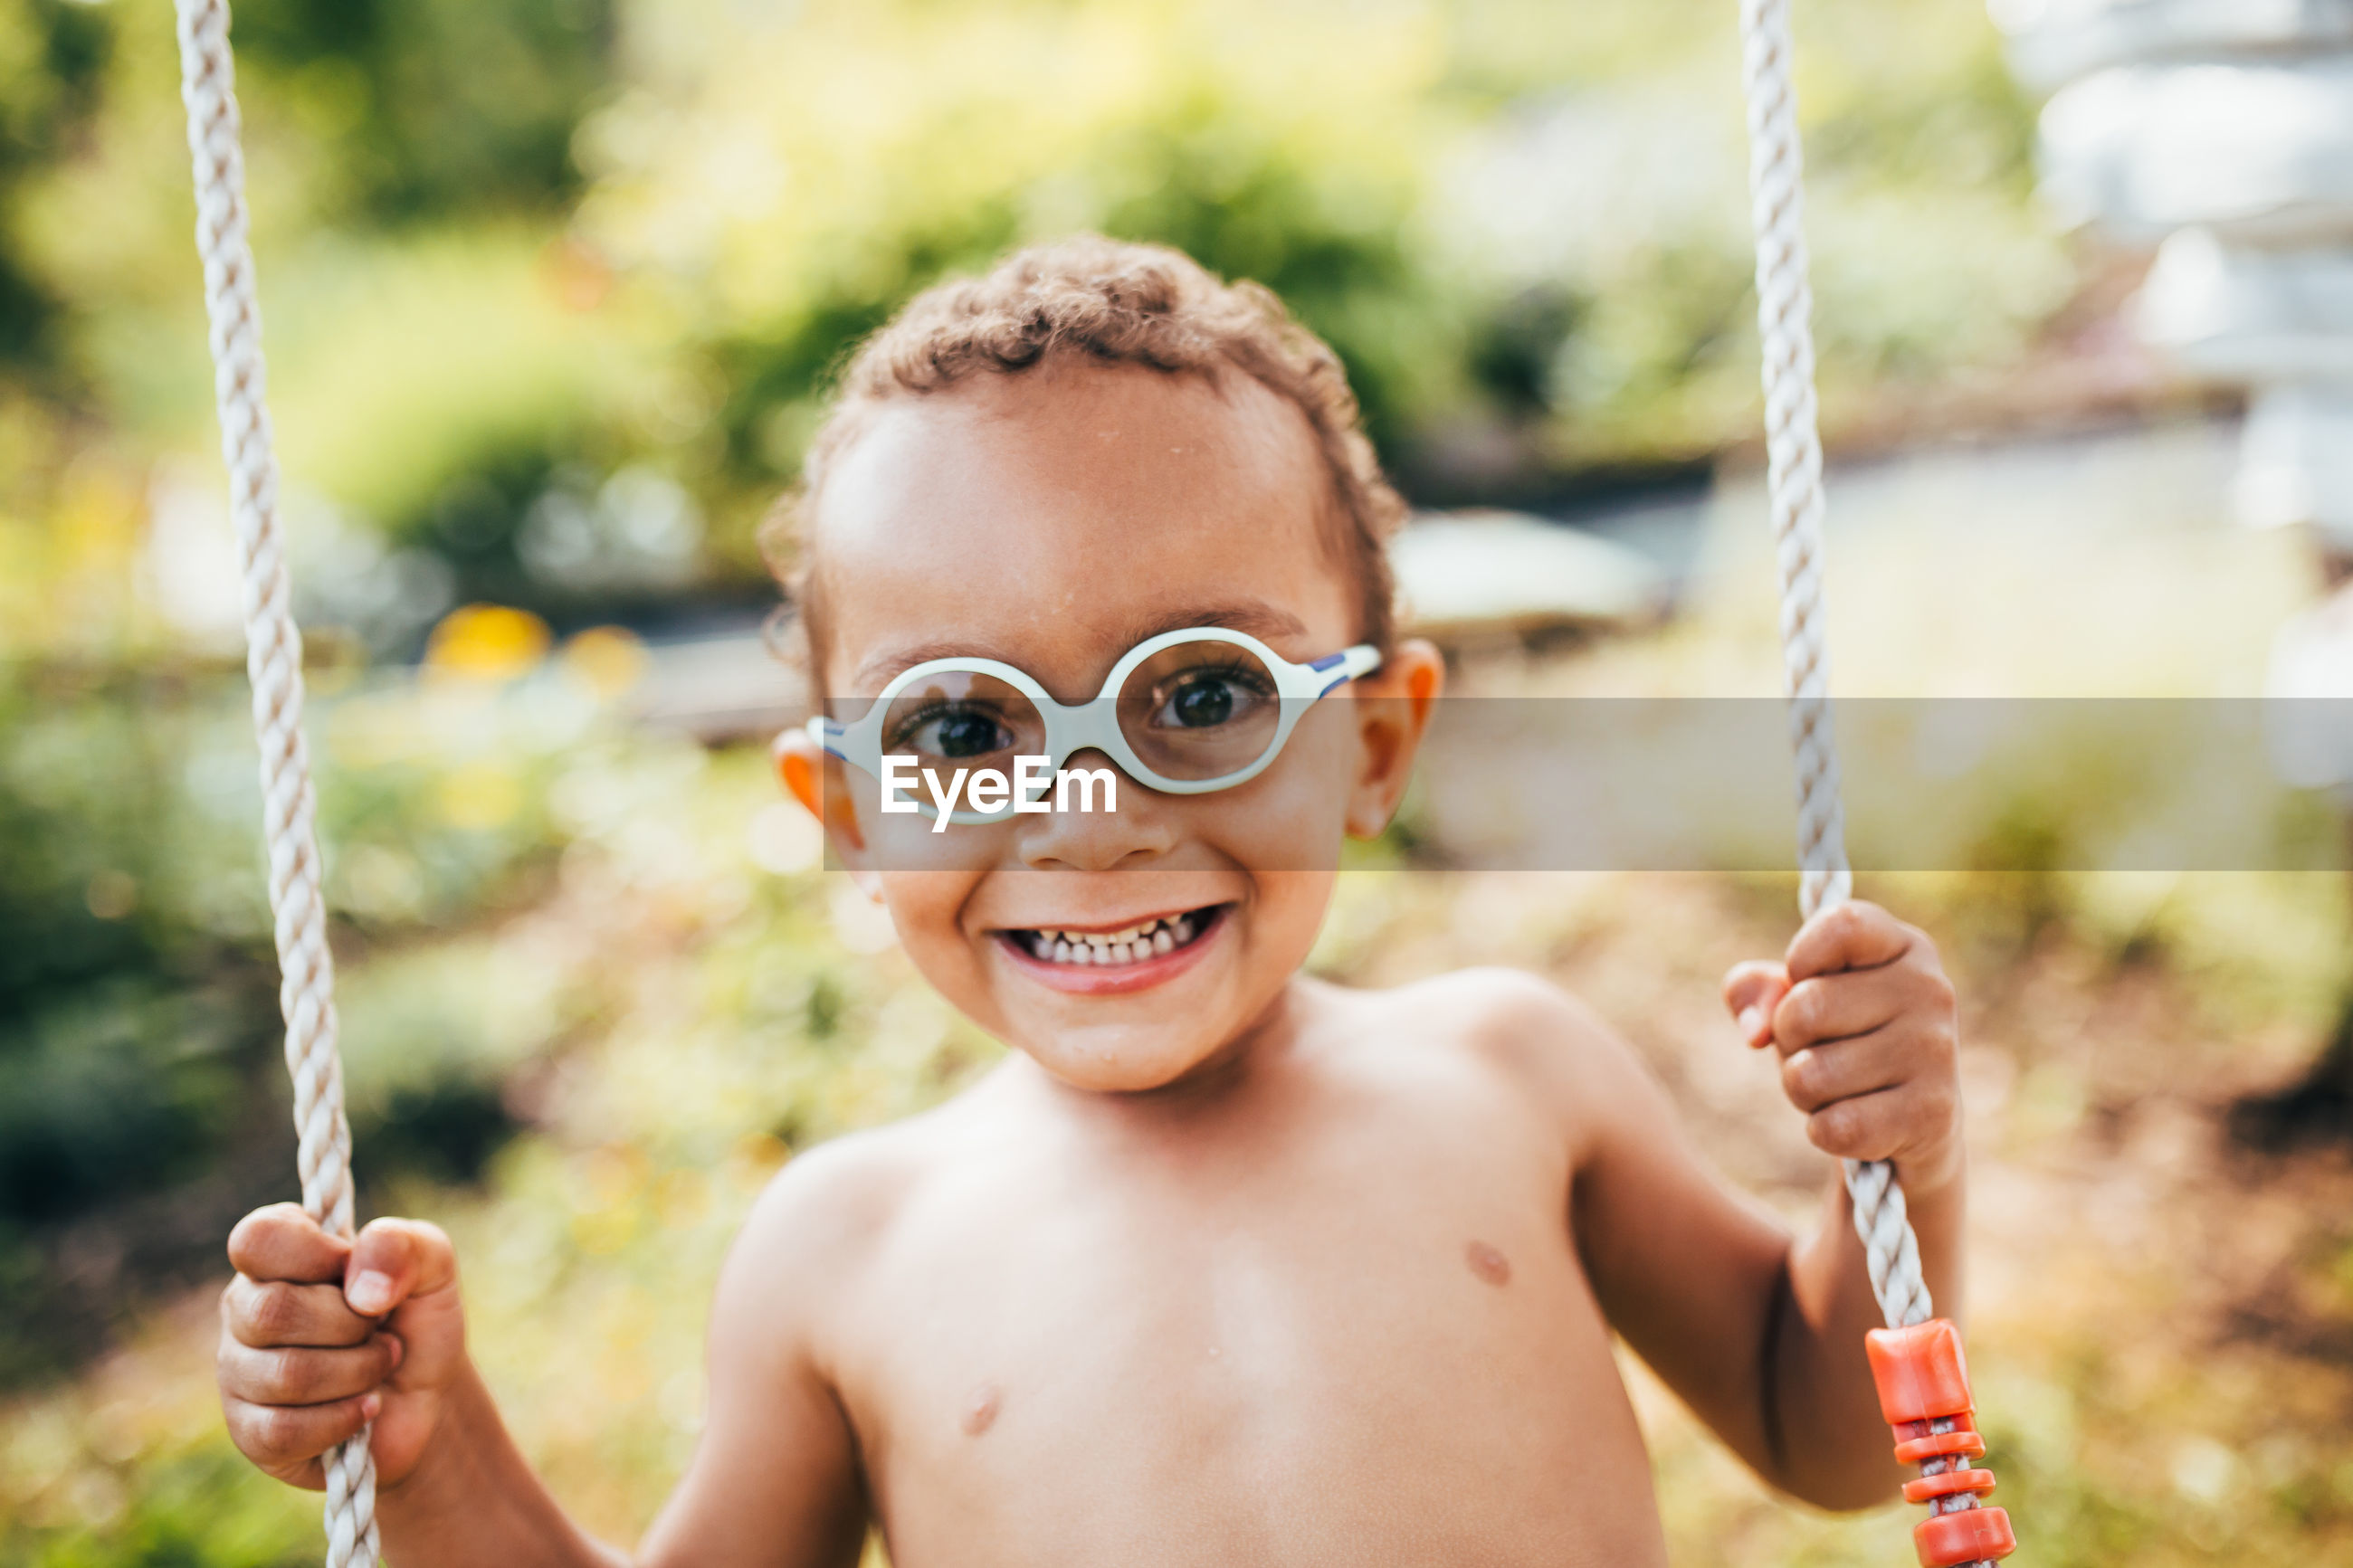 Portrait of shirtless boy sitting on swing against trees